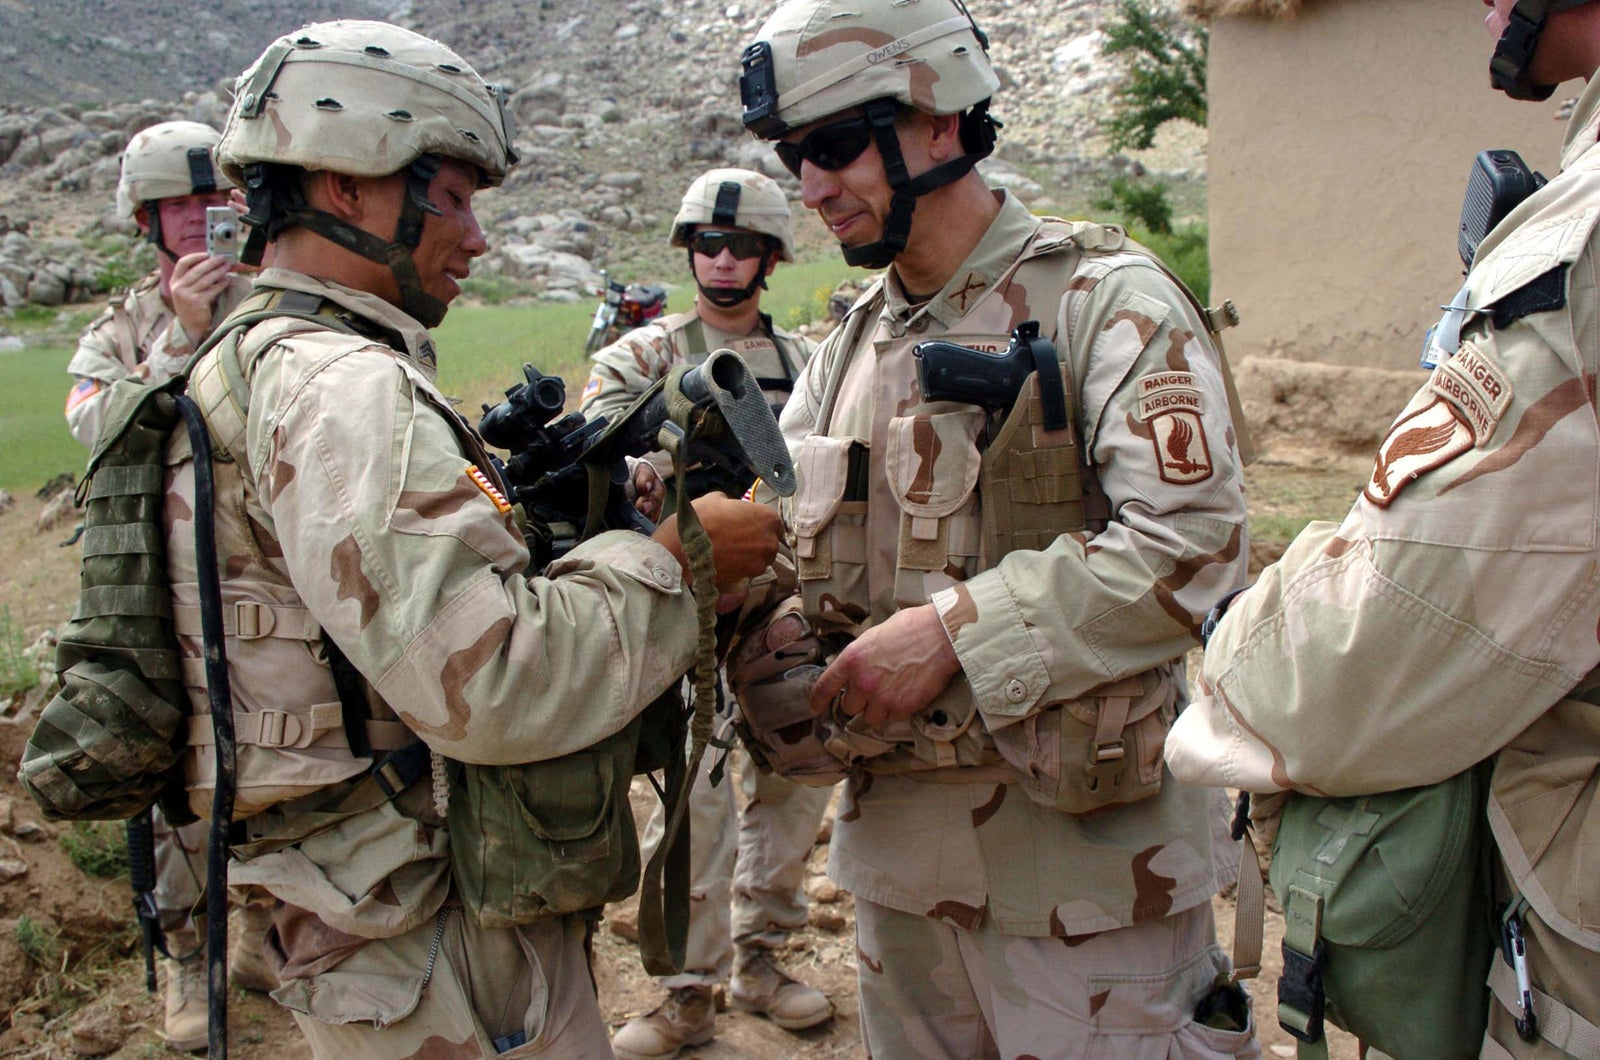 Soldiers talking. Military lingo is a tradition